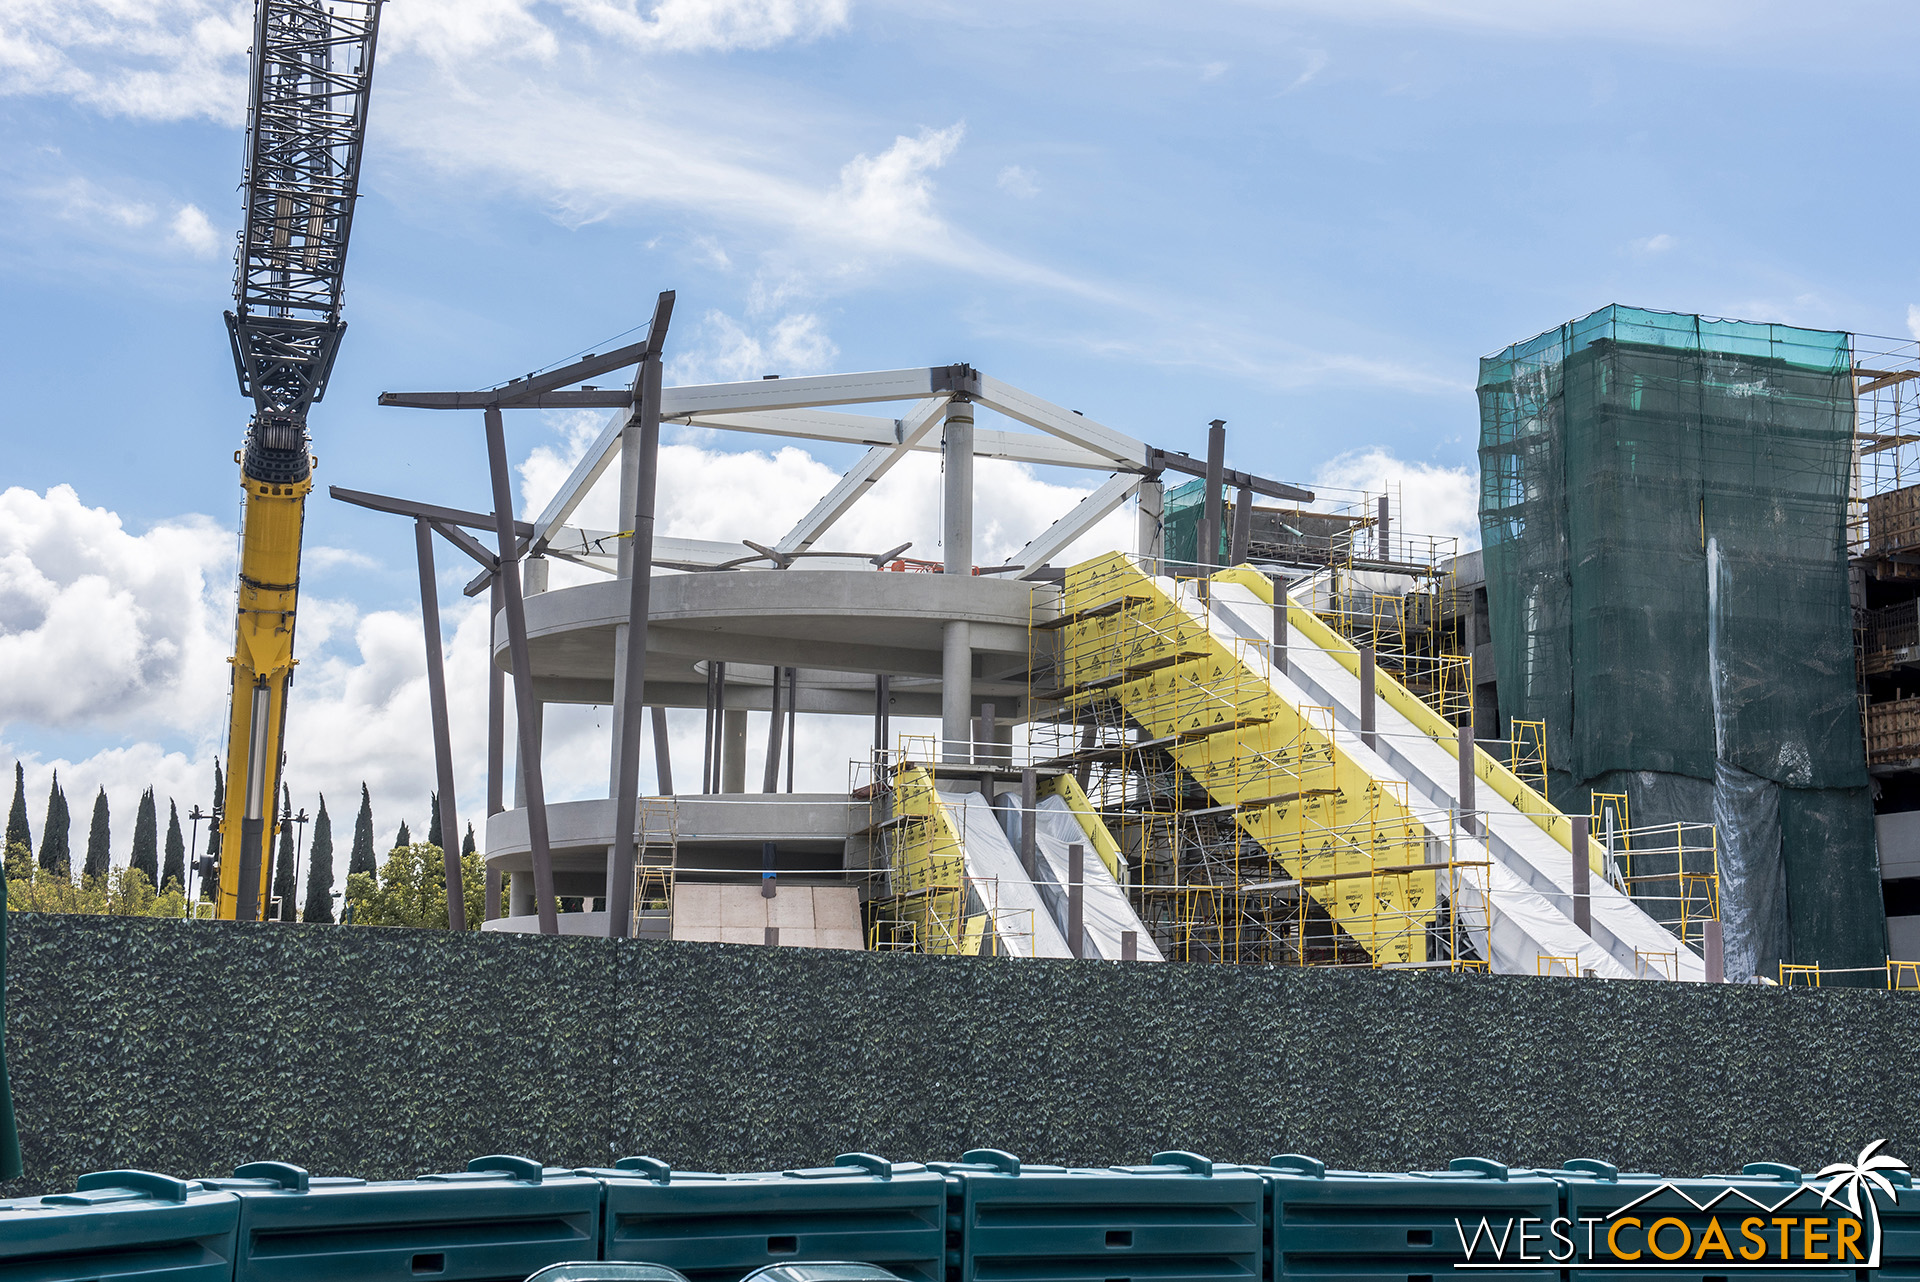 Here's the escalator promenade from ground level.